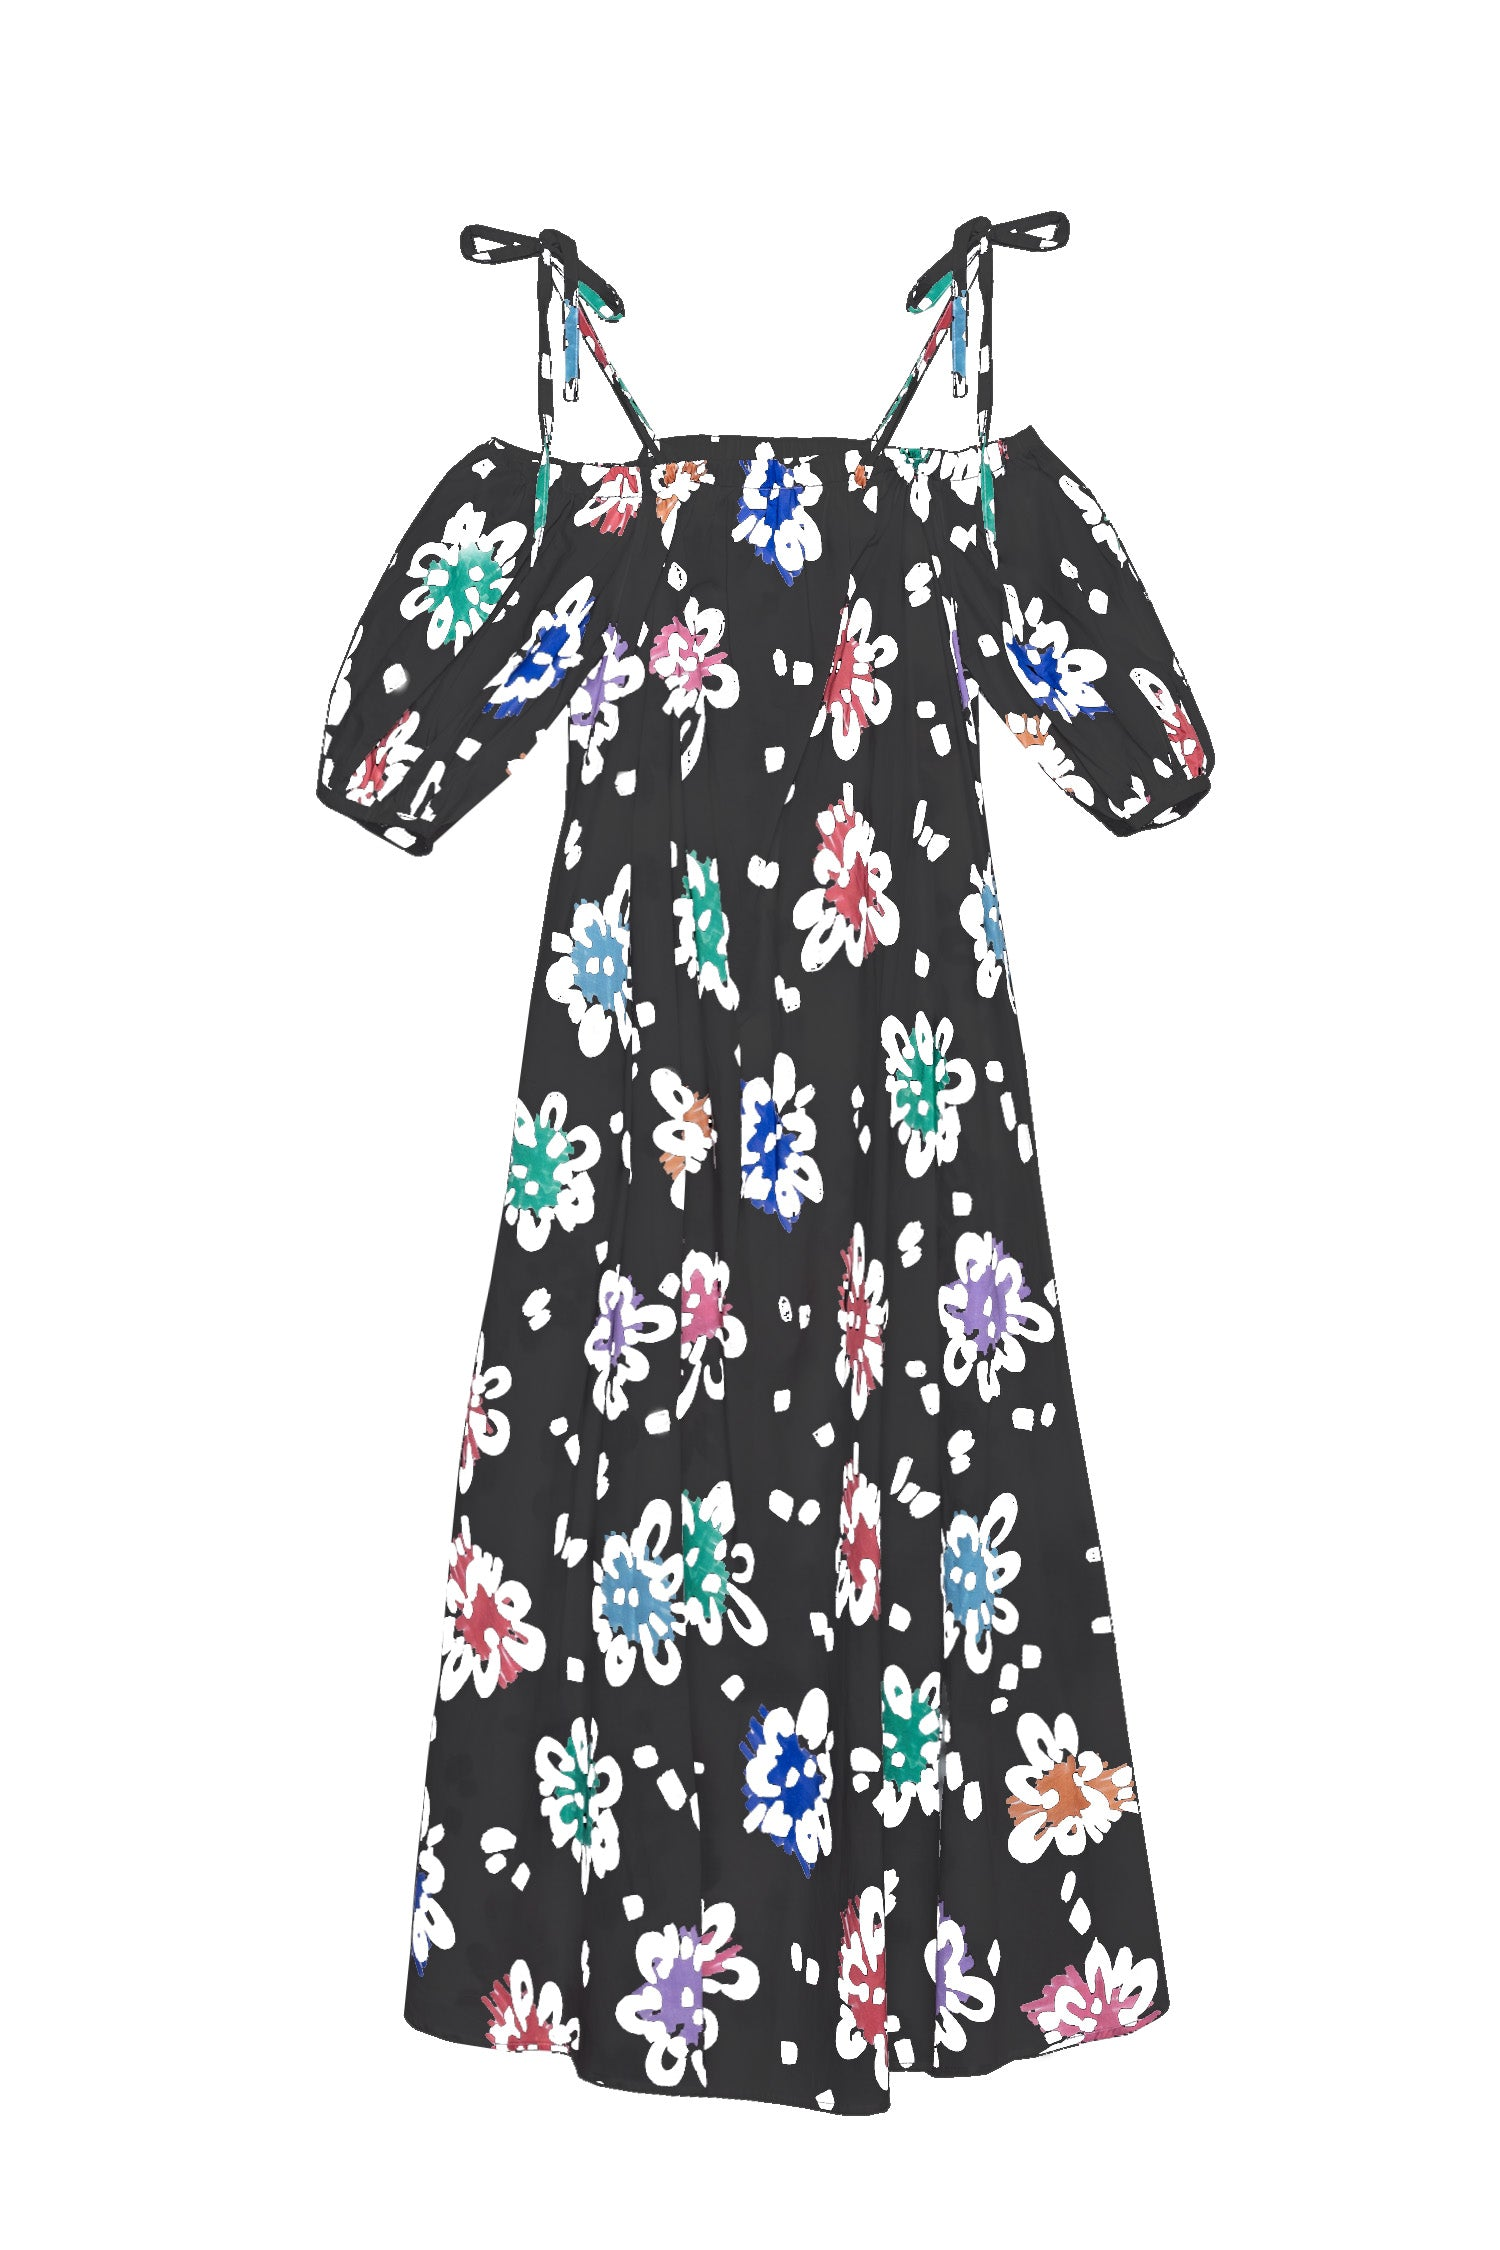 Joey Jay printed dress